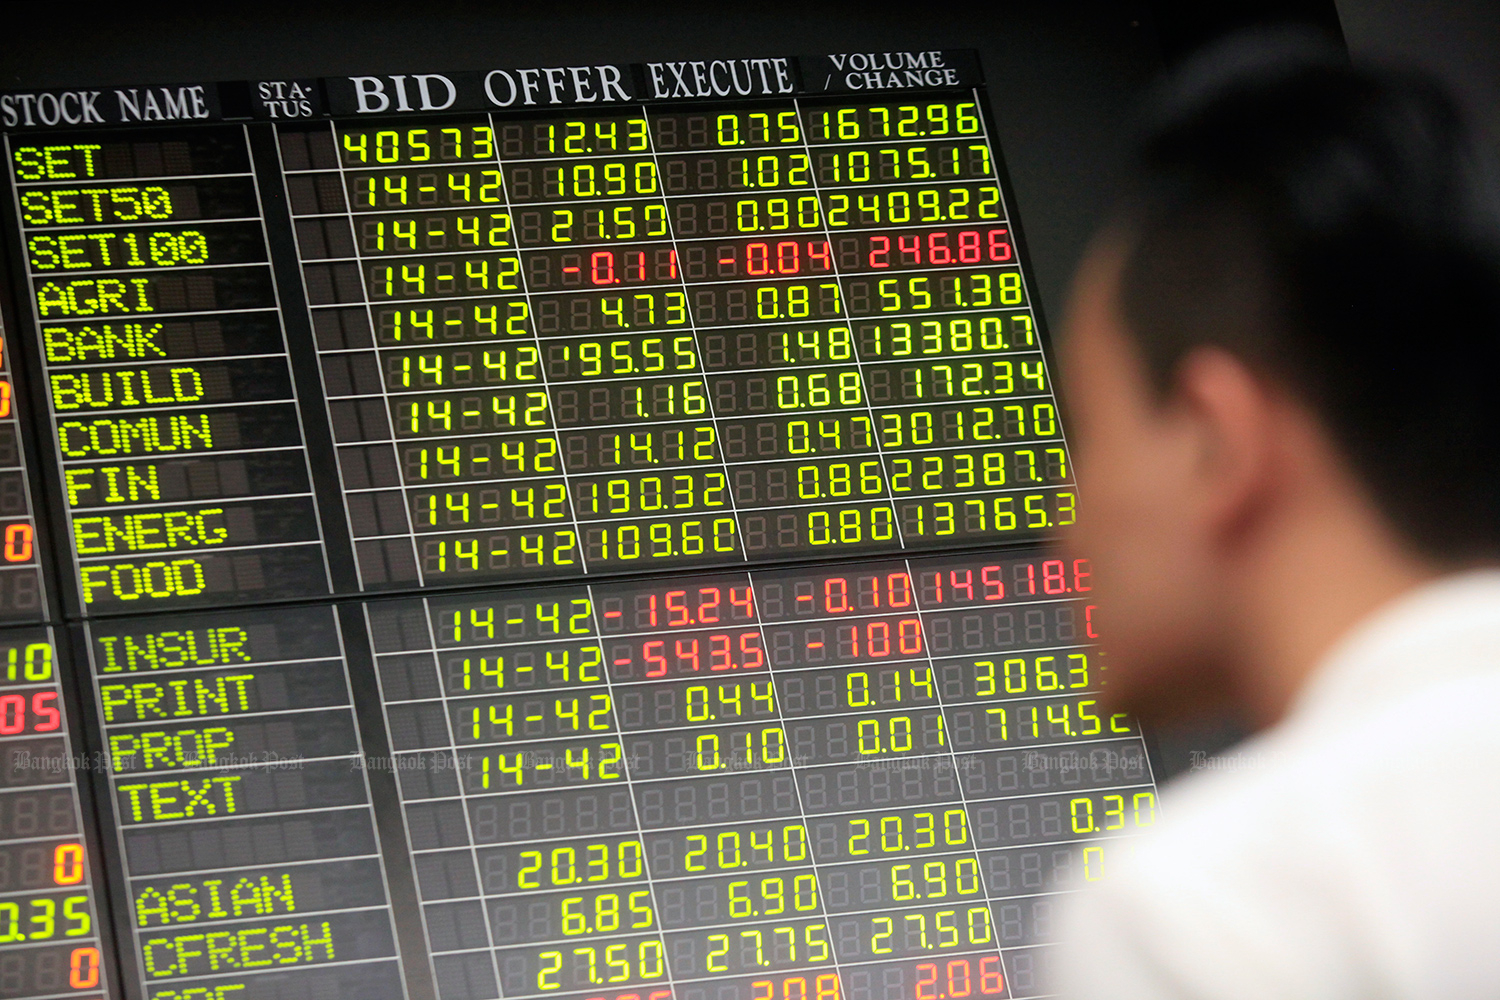 SET index rallies on trade row cooling